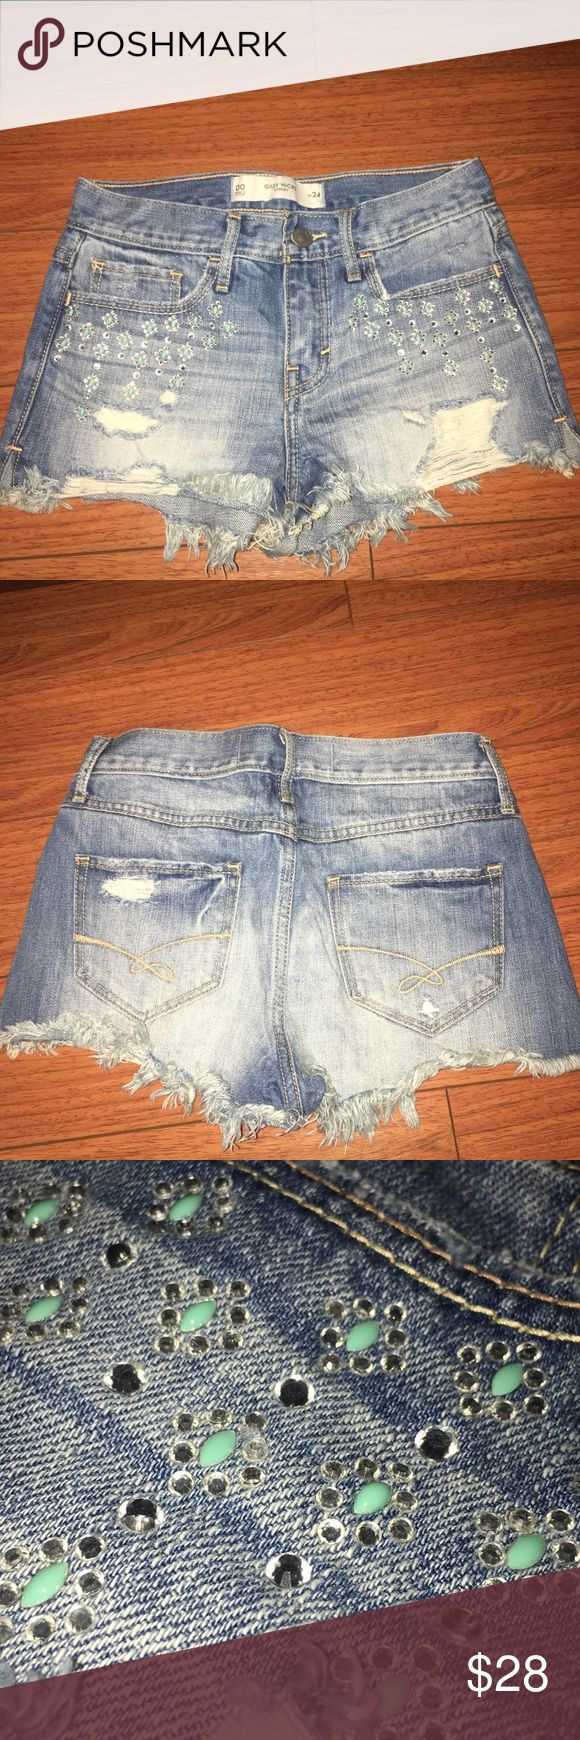 Jeweled embellished Gilly Hicks shorts These Gilly Hicks shorts are perfect for concerts or the beach! They have a cute embellished design on the front of the shorts with a few rips and fraying at the bottom. These are a mid to high rise shorts. ❗️❗️❗️FEEL FREE TO MAKE AN OFFER❗️❗️❗️ Gilly Hicks Shorts Jean Shorts